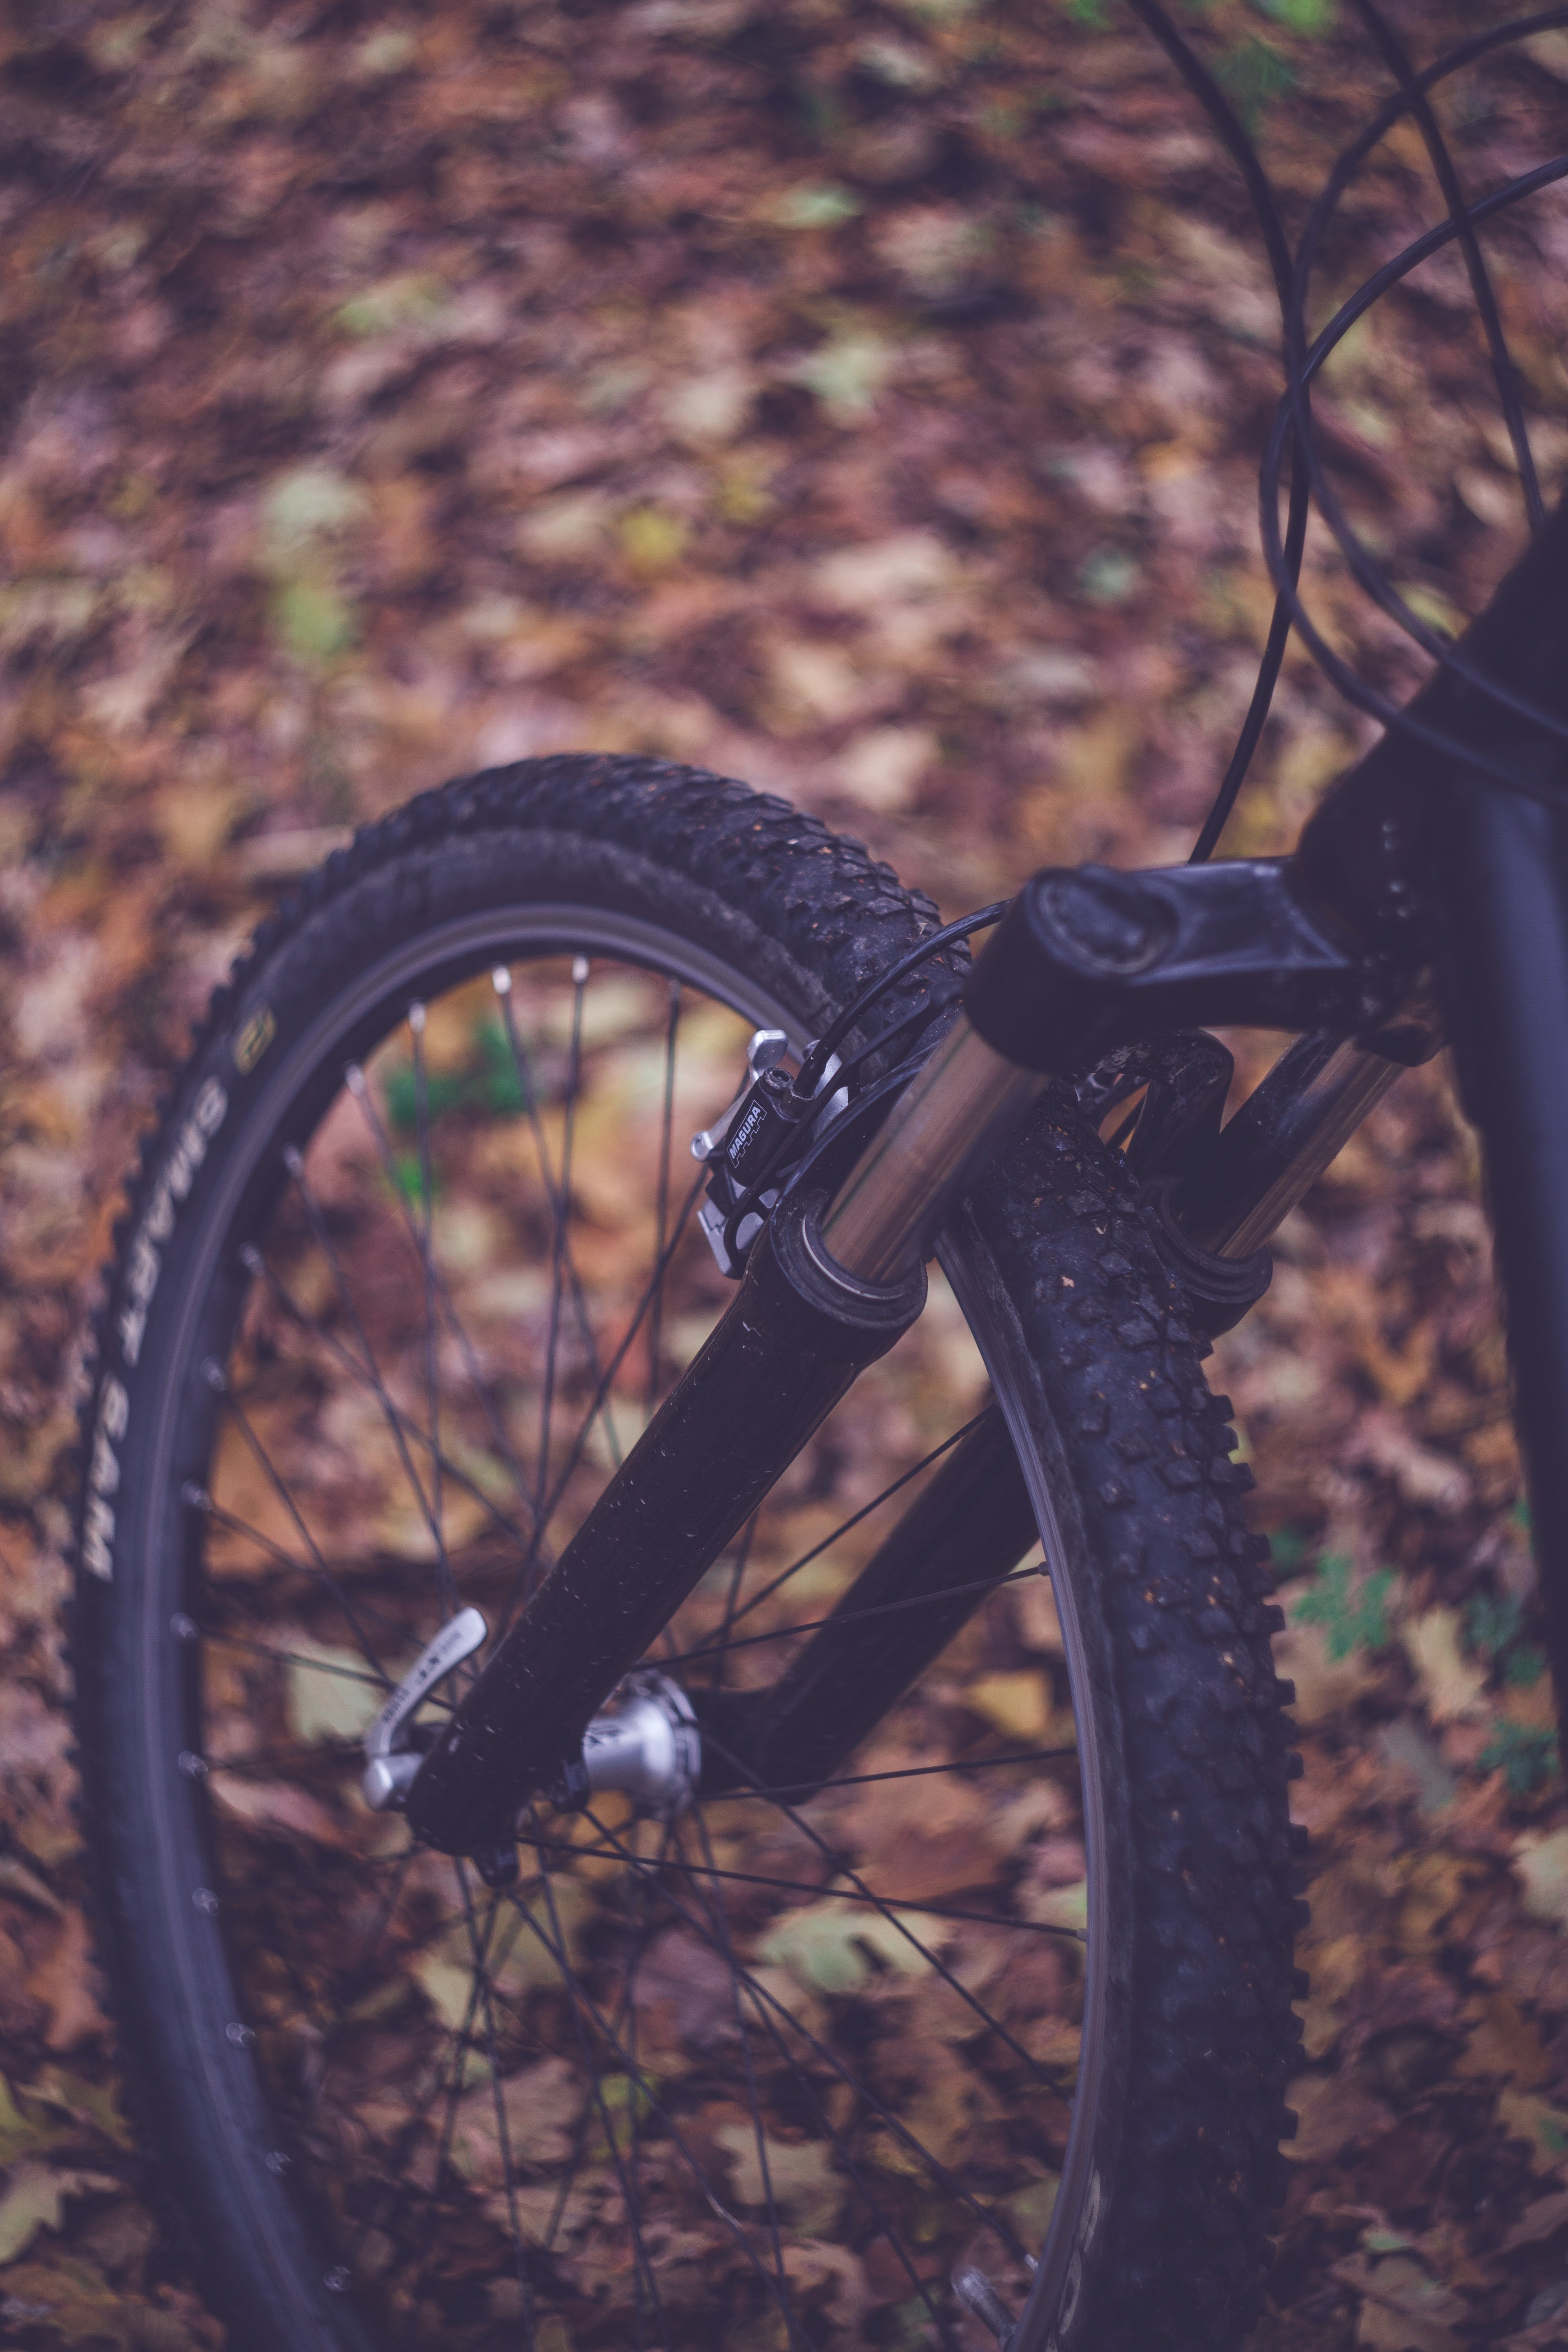 Tilt Shift Focus Photography of Bicycle on Outdoors